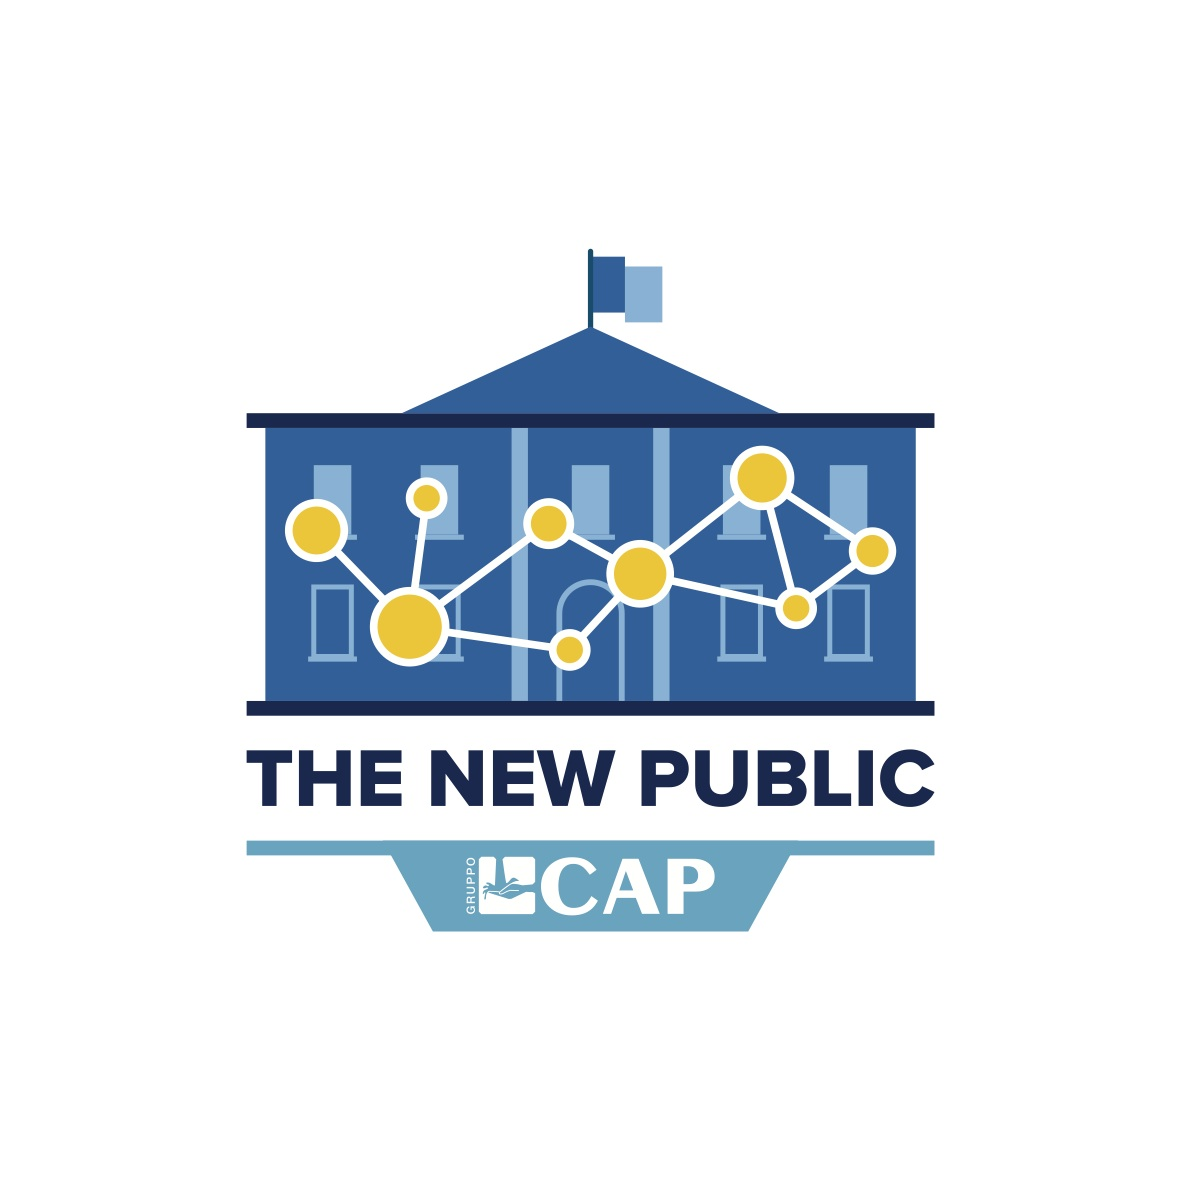 CAP – The new public